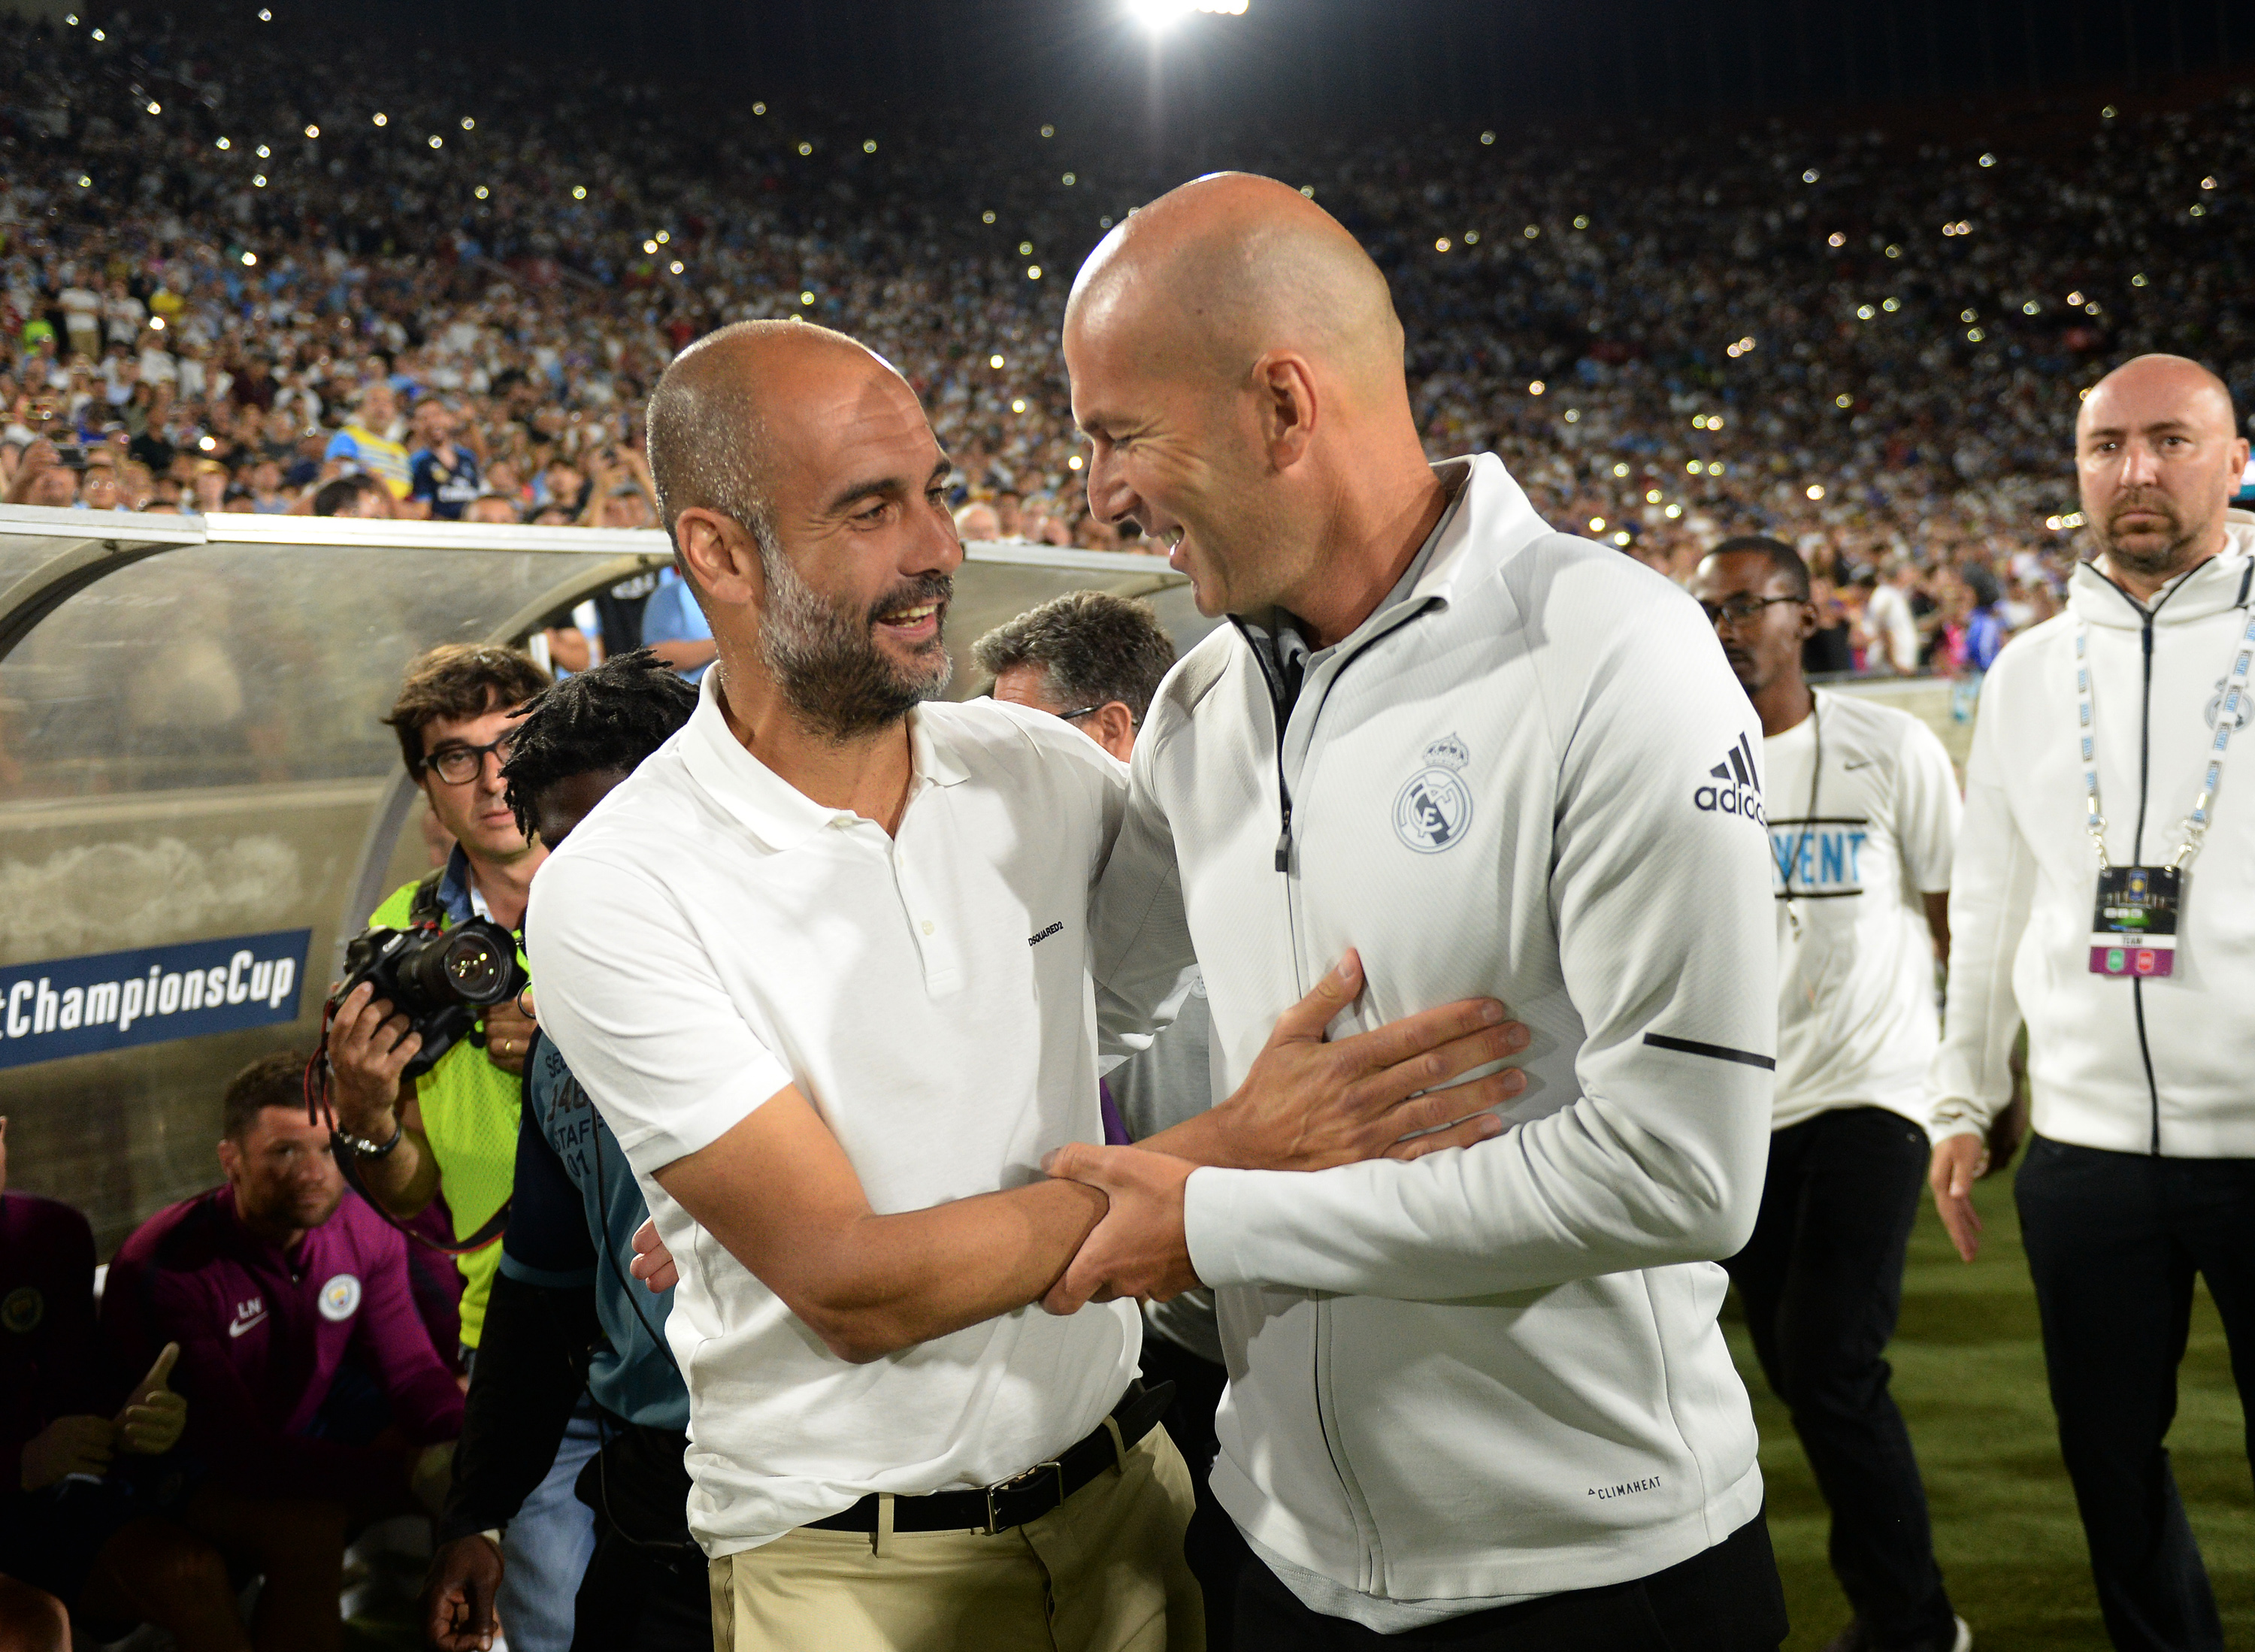 International Champions Cup 2017 -Manchester City v Real Madrid